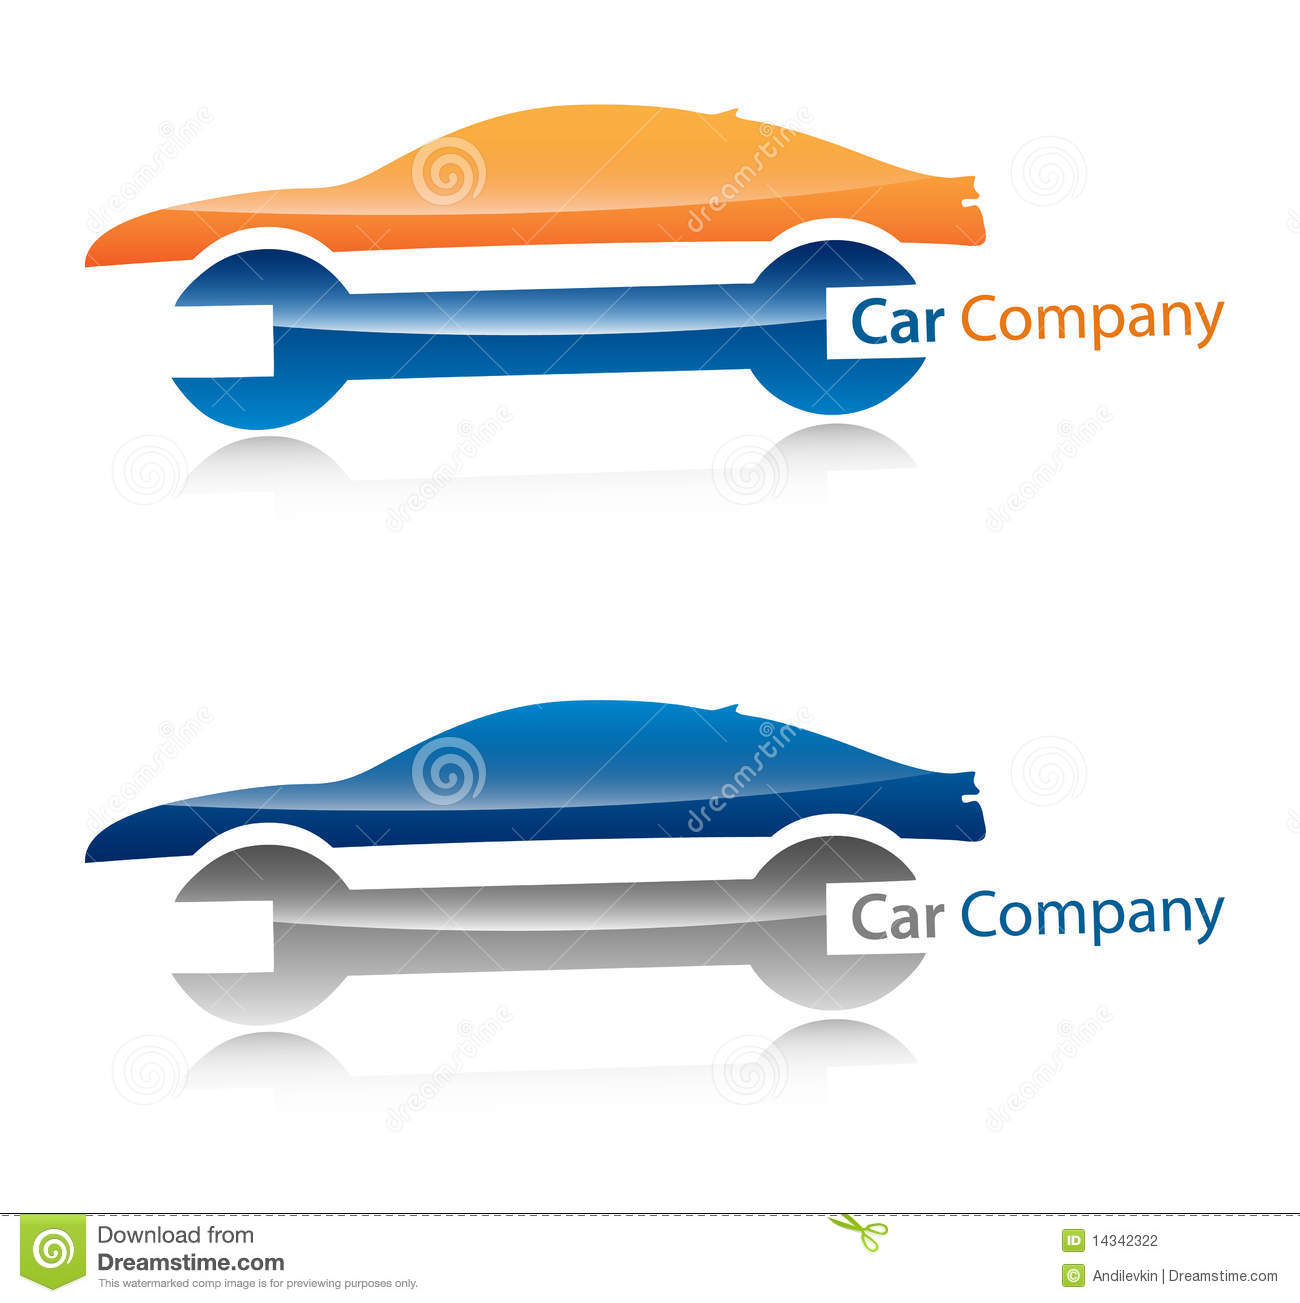 Car Company Logo Stock Vector Illustration Of Company 14342322